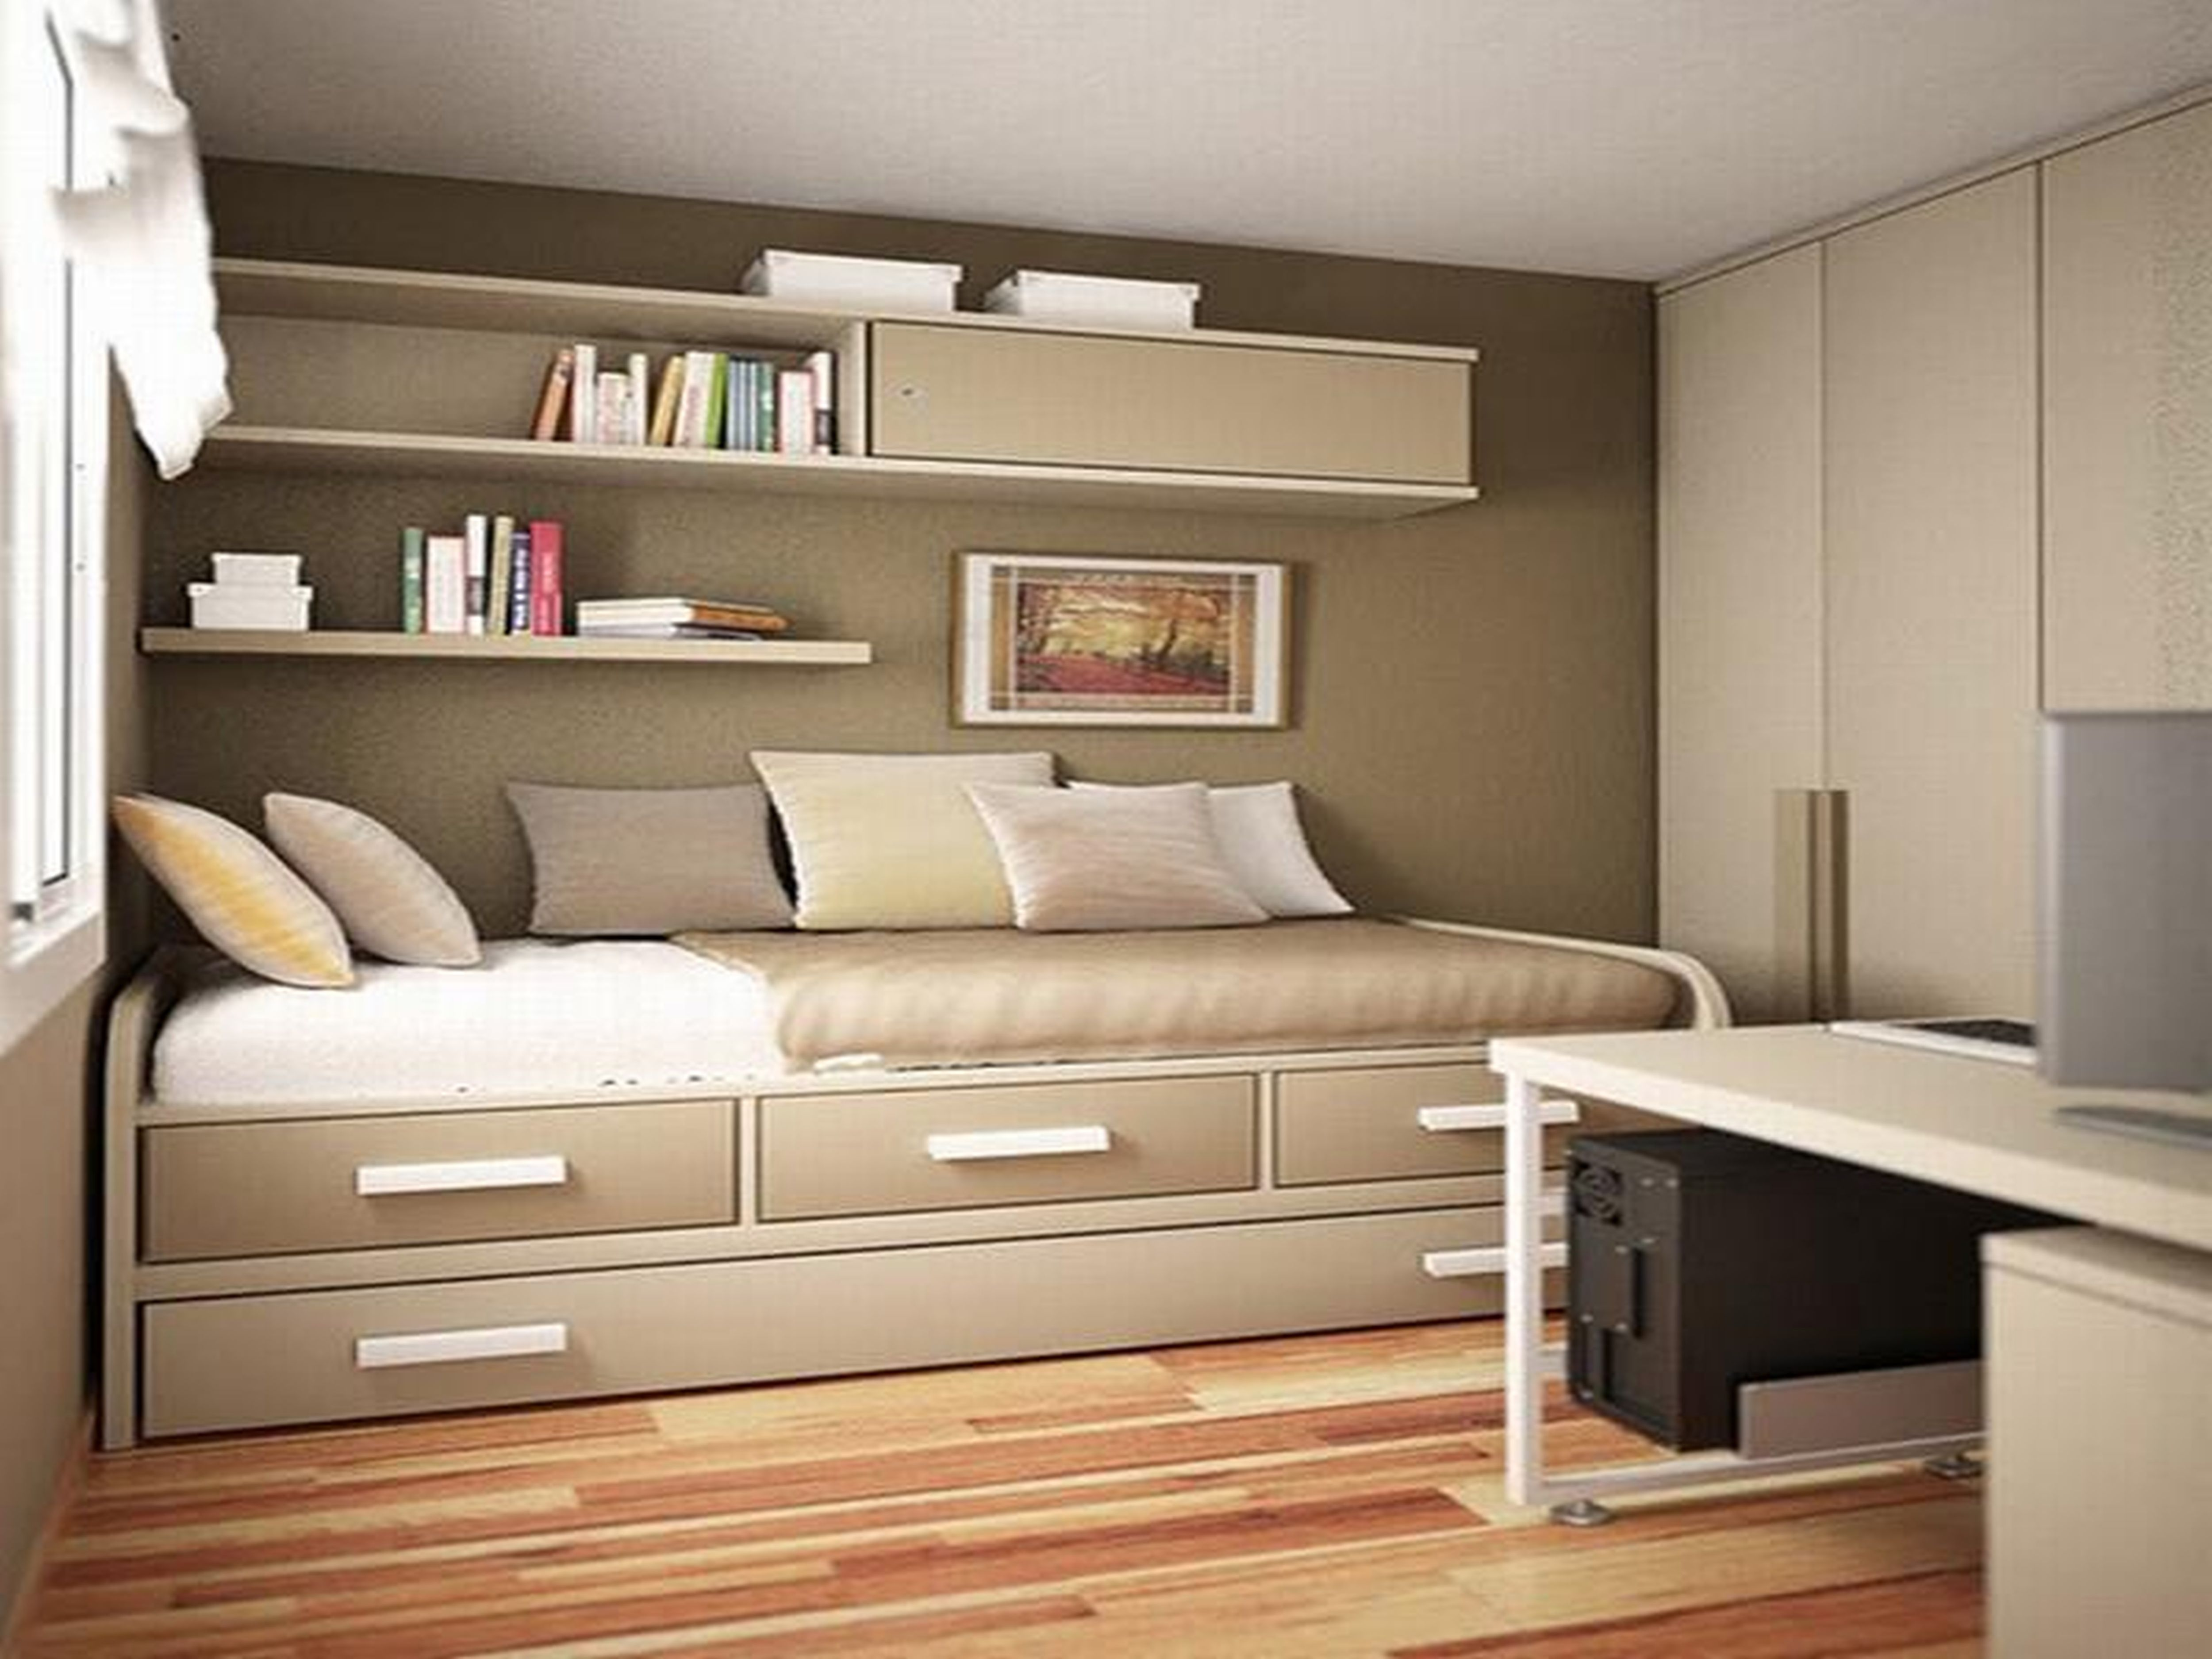 Best Sophisticated Small Grey Bedroom Decors With Wall Cabinet 640 x 480